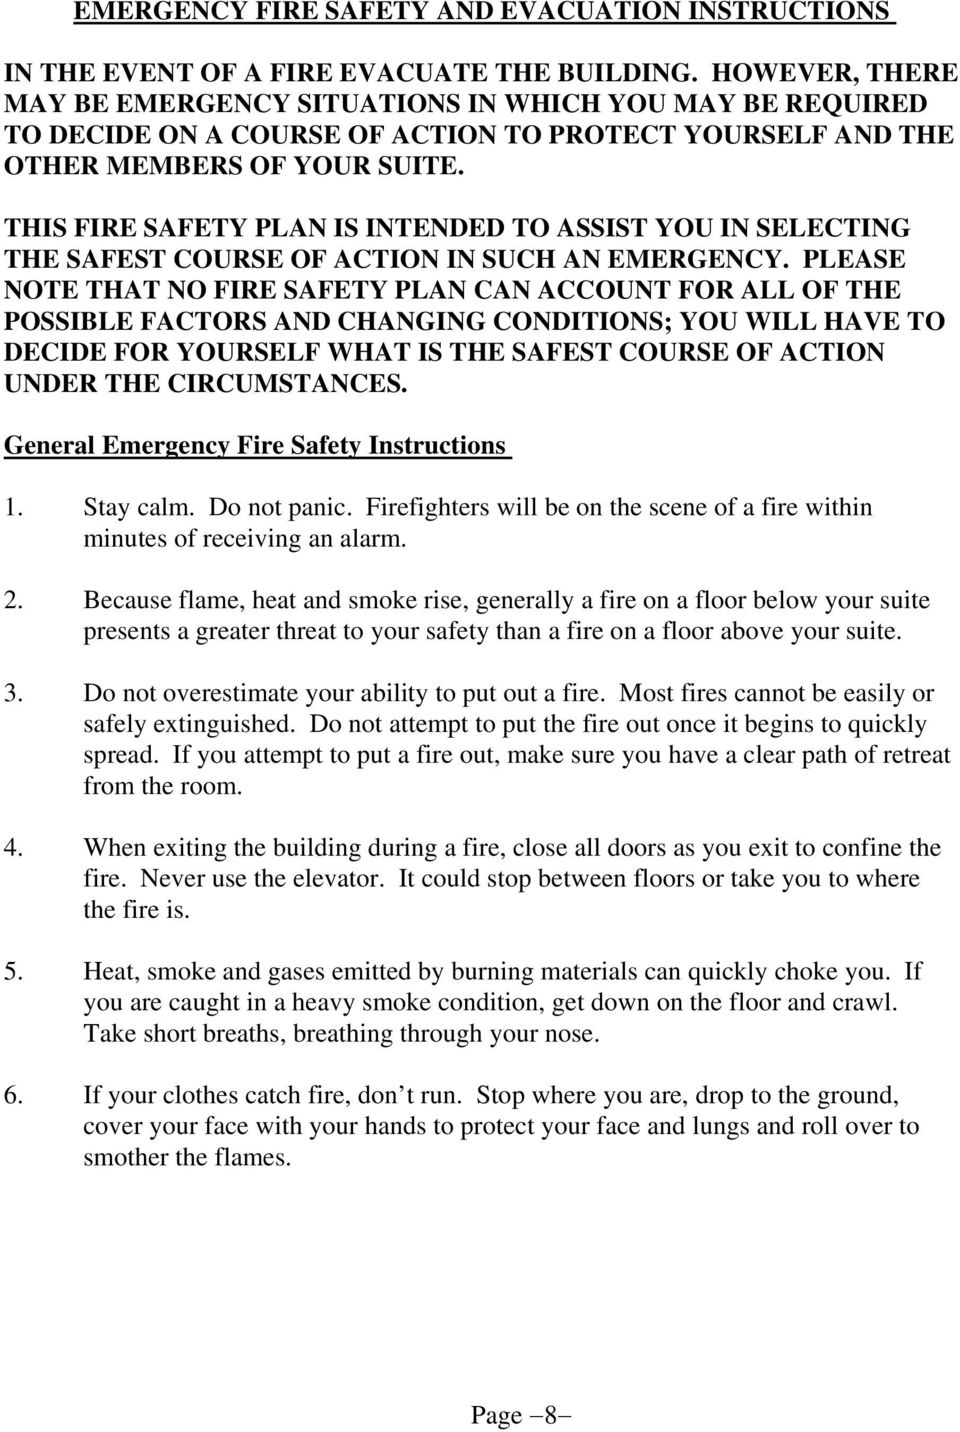 THIS FIRE SAFETY PLAN IS INTENDED TO ASSIST YOU IN SELECTING THE SAFEST COURSE OF ACTION IN SUCH AN EMERGENCY.